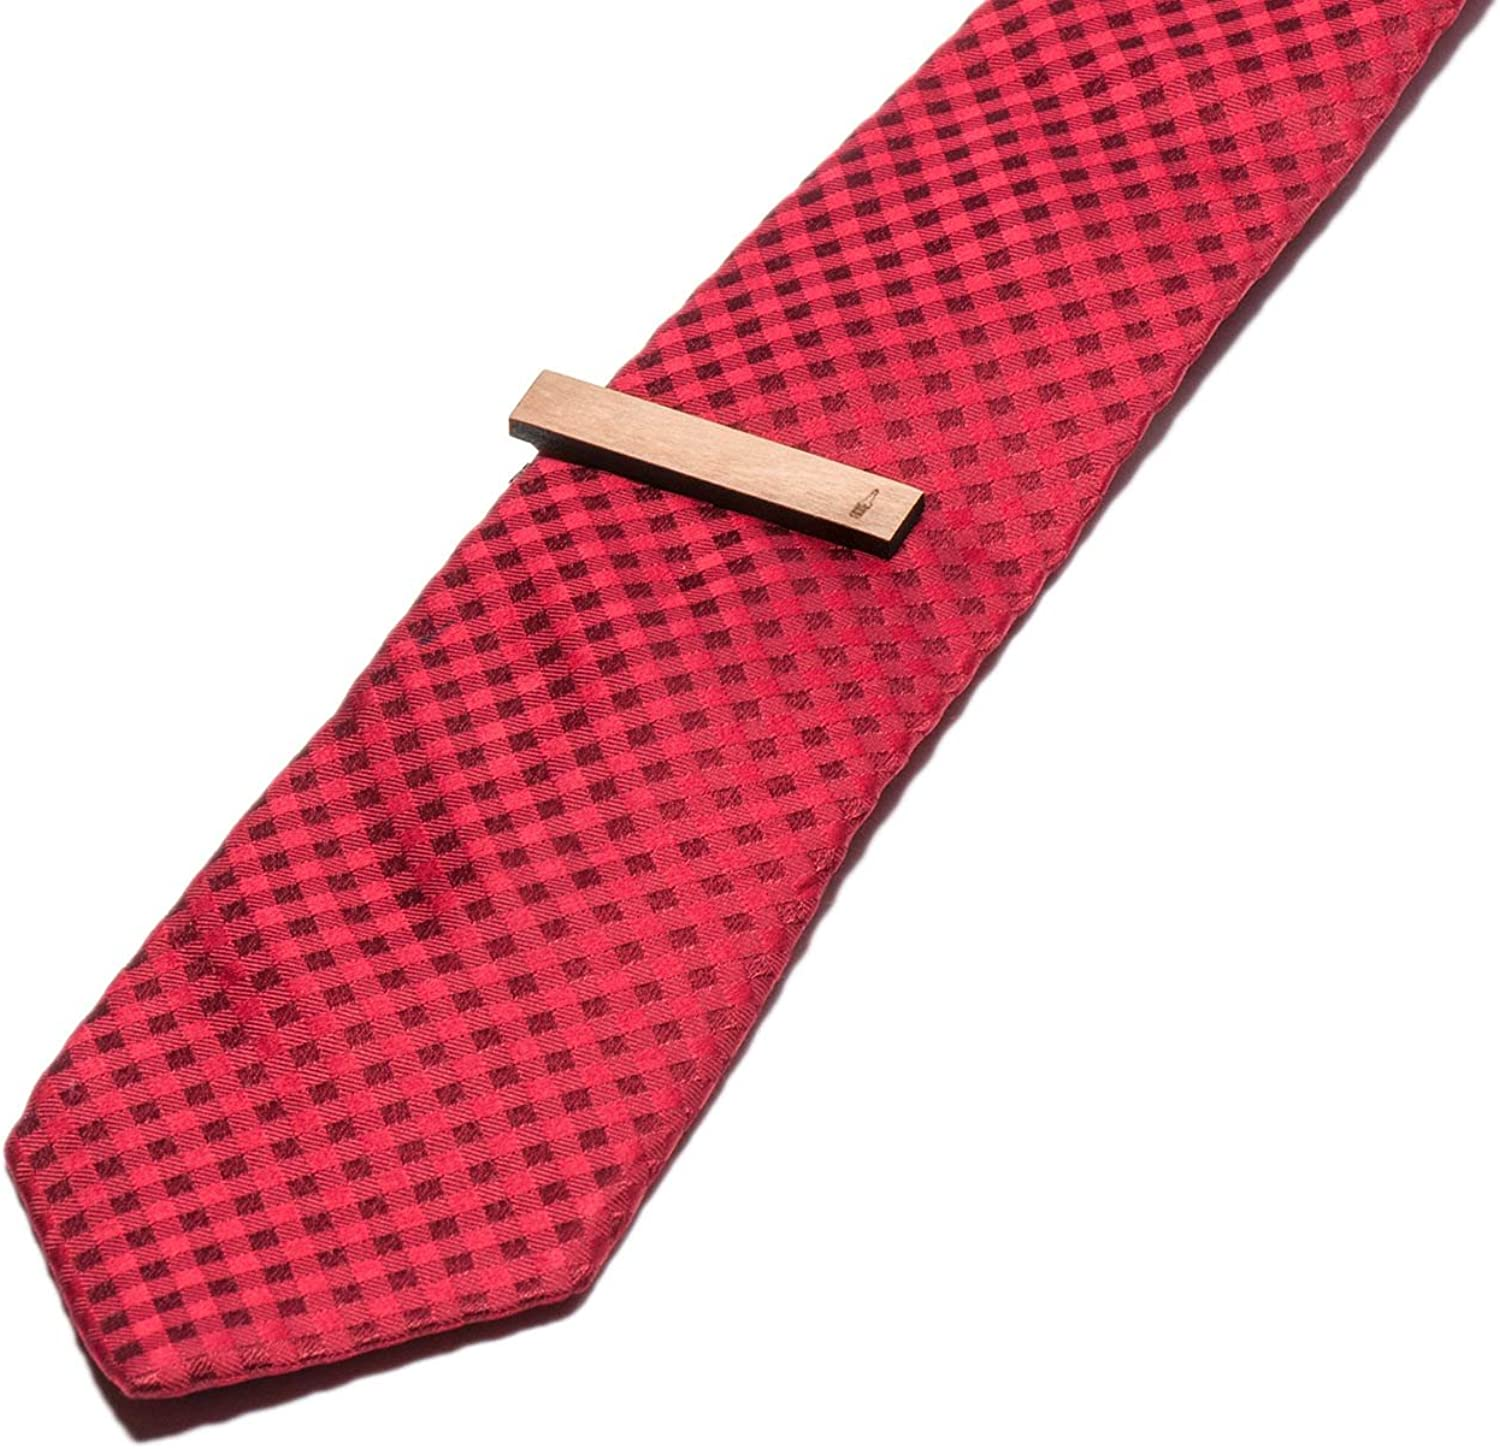 Wooden Accessories Company Wooden Tie Clips with Laser Engraved Old Bottle Design Cherry Wood Tie Bar Engraved in The USA